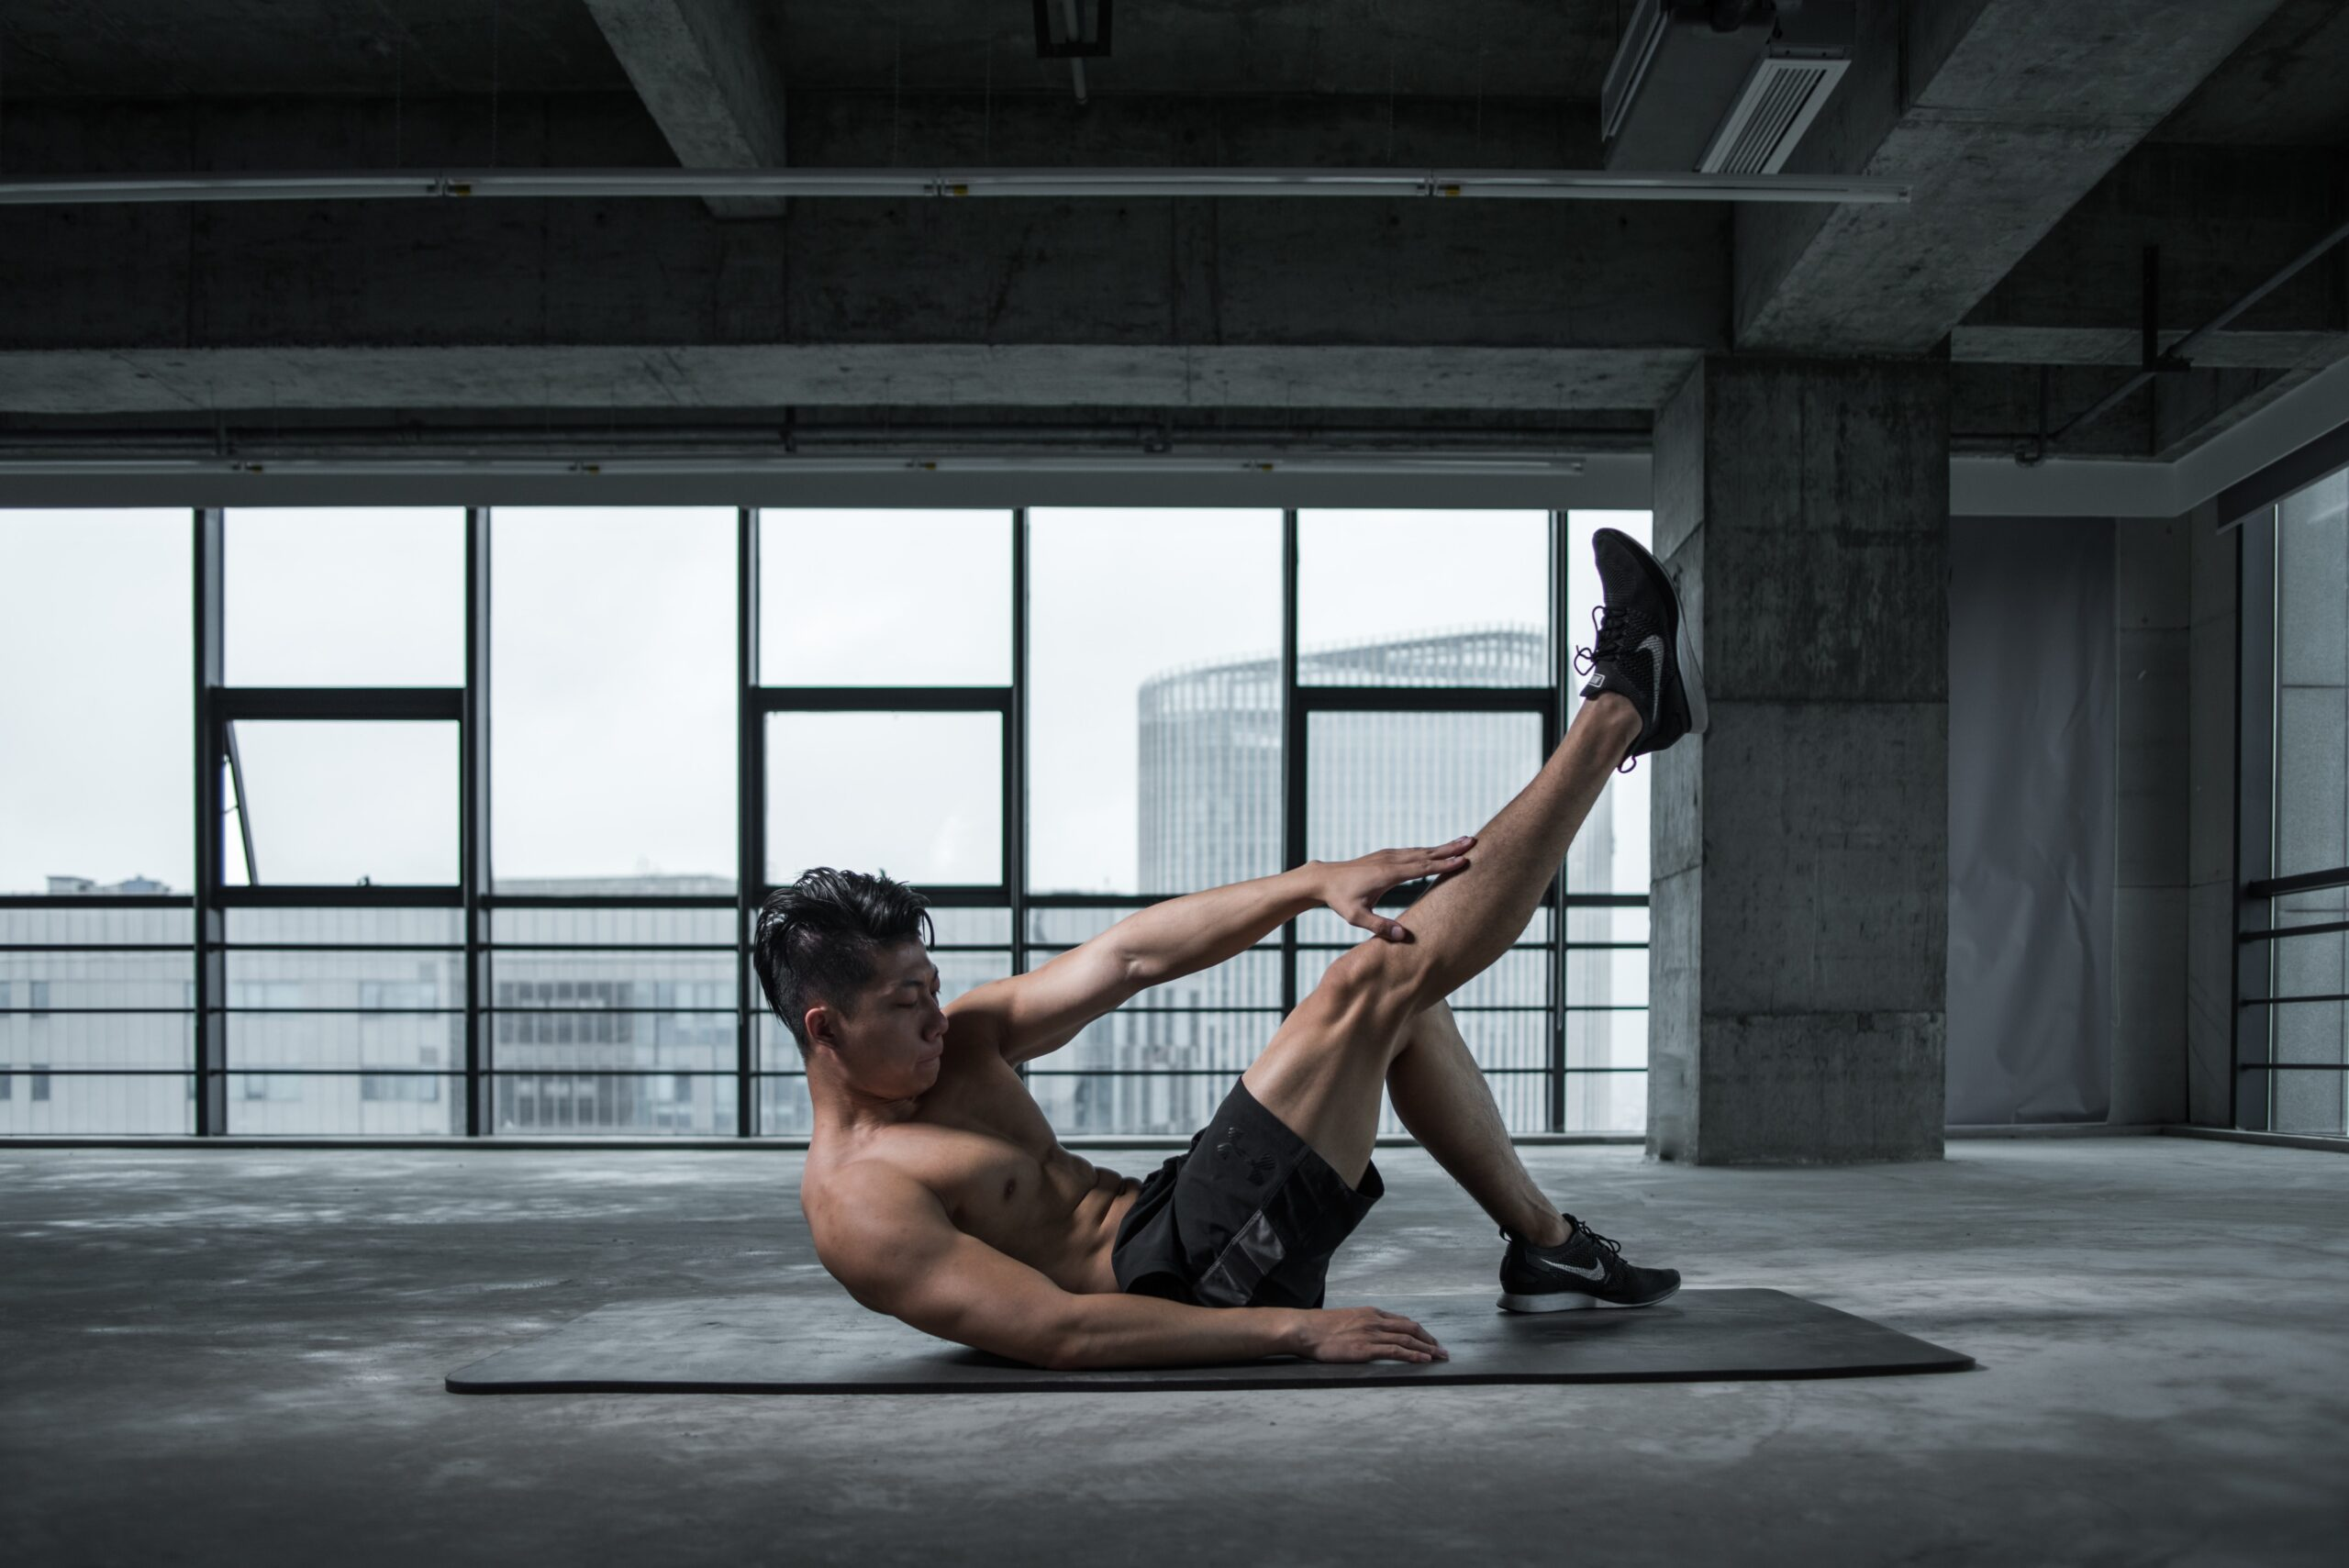 Male athlete working out